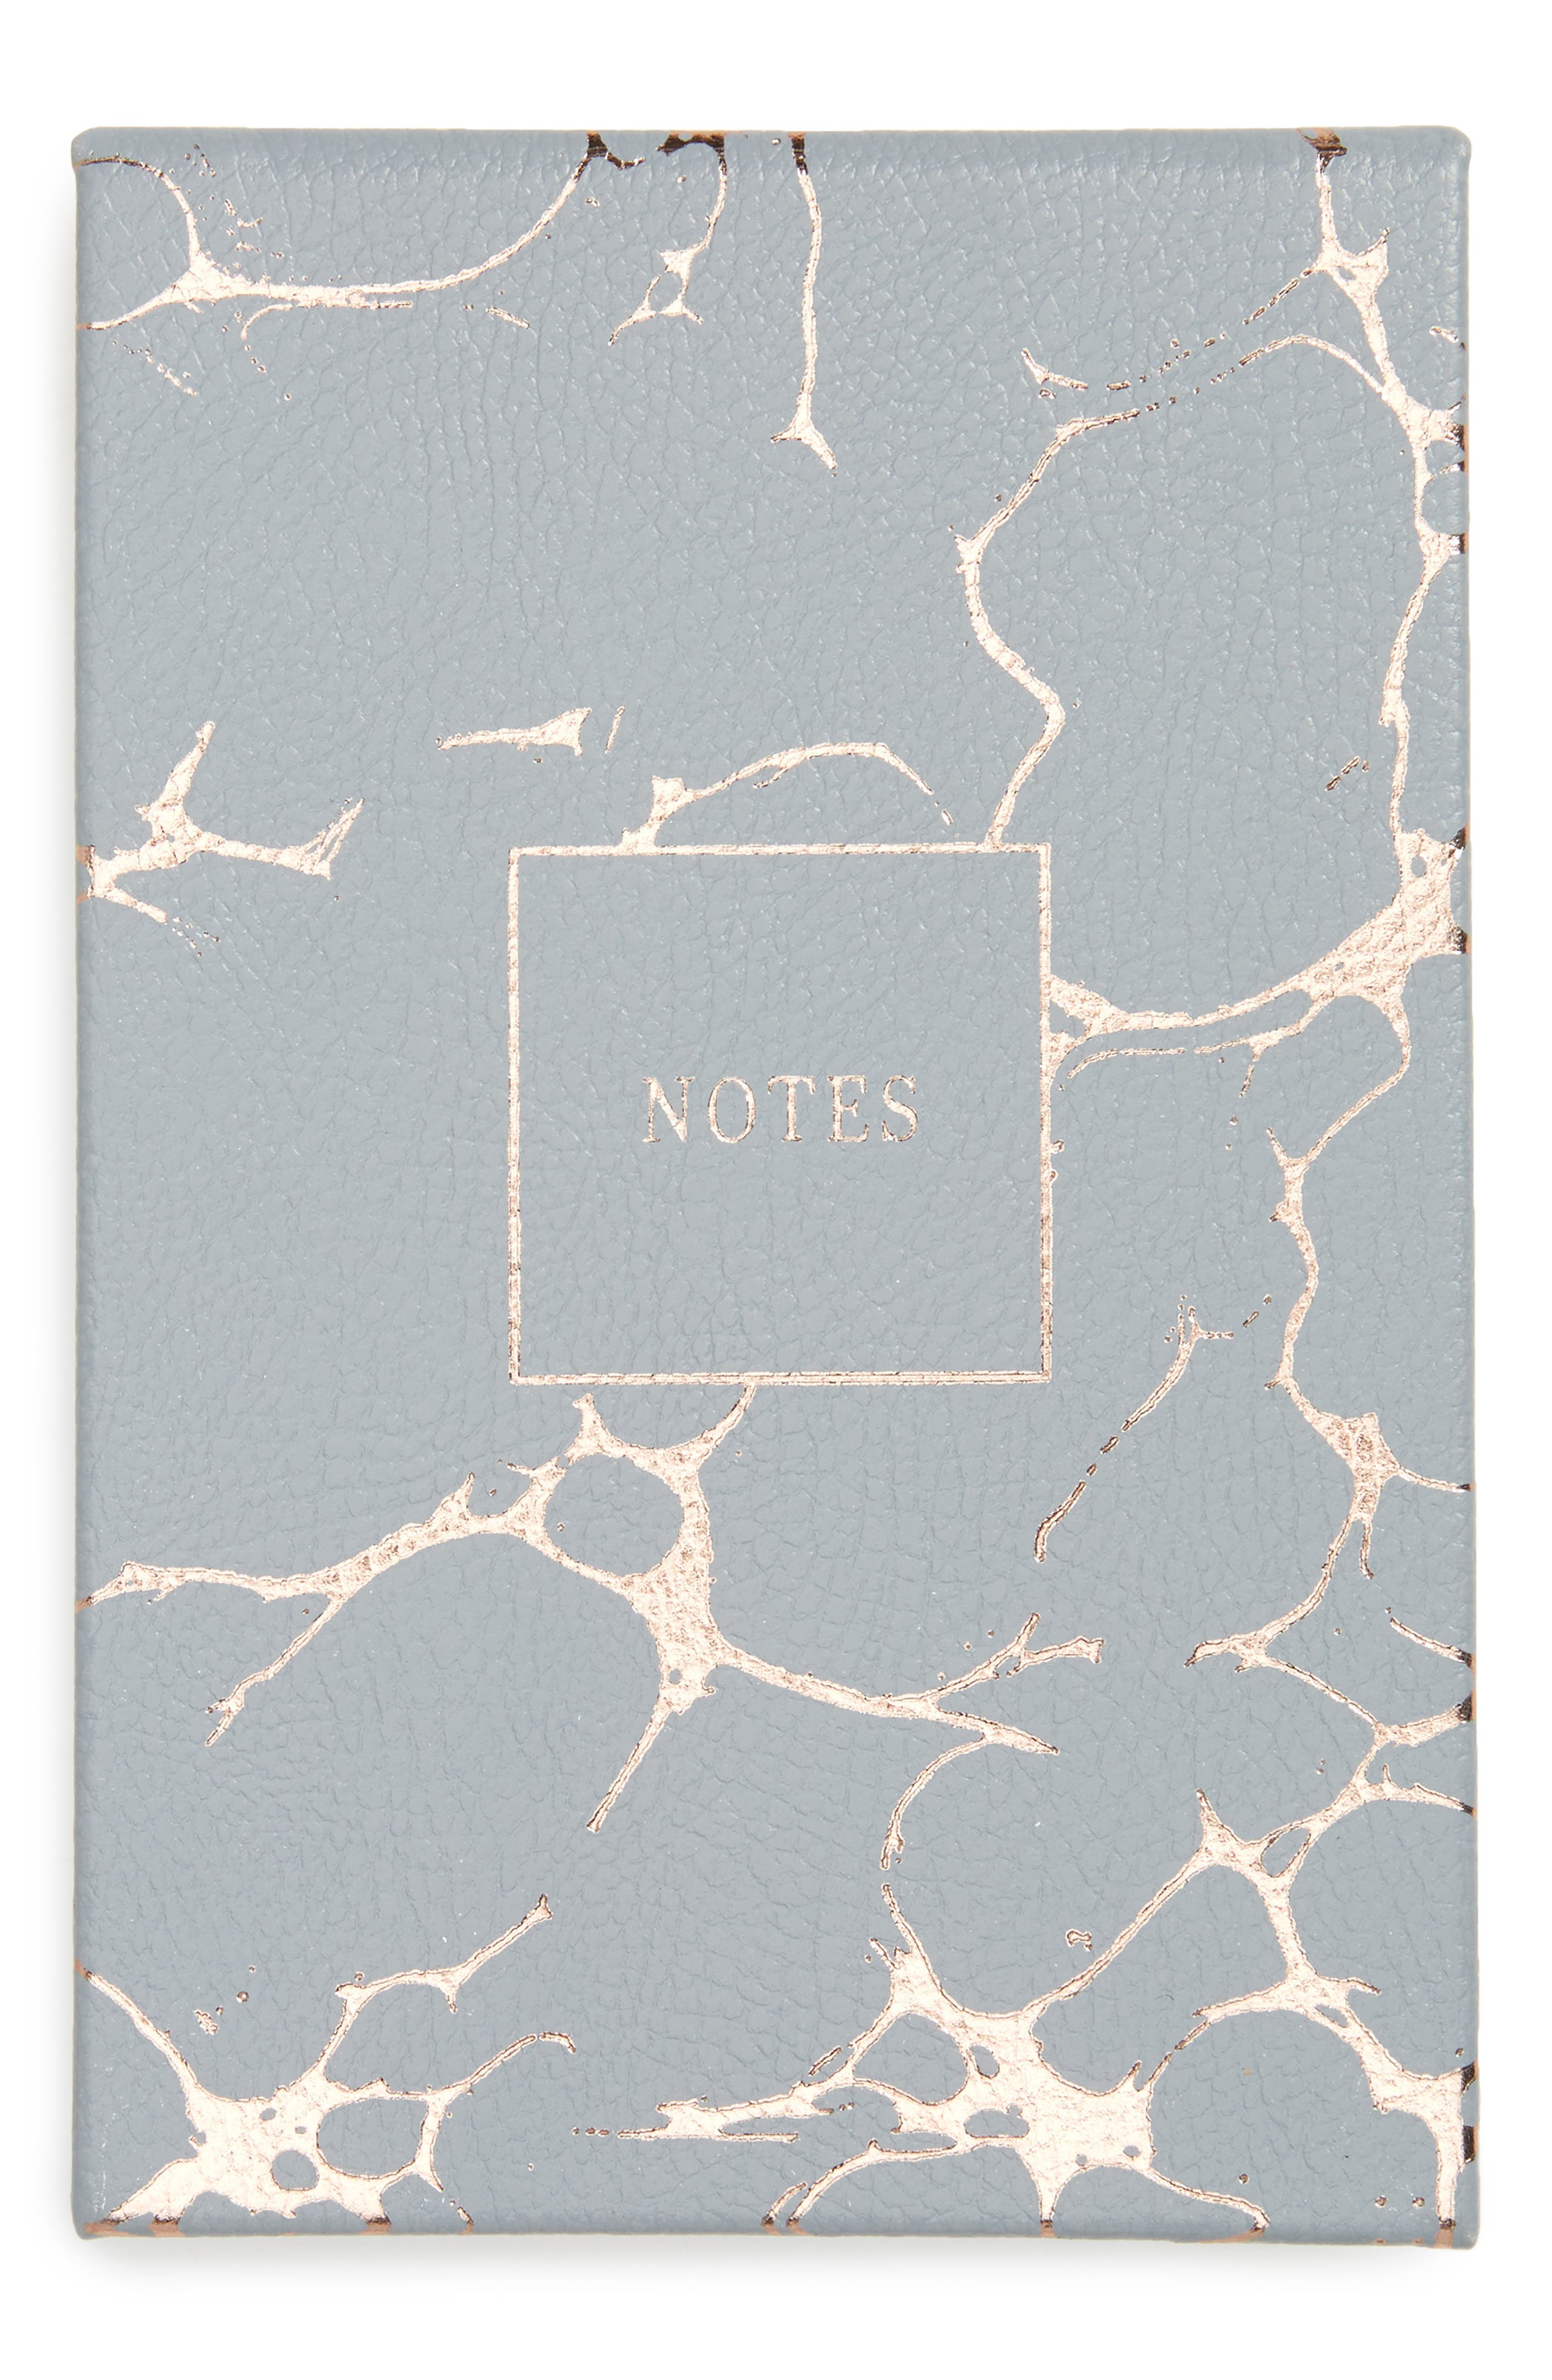 Main Image - Fringe Studio Grey Marble Notepad